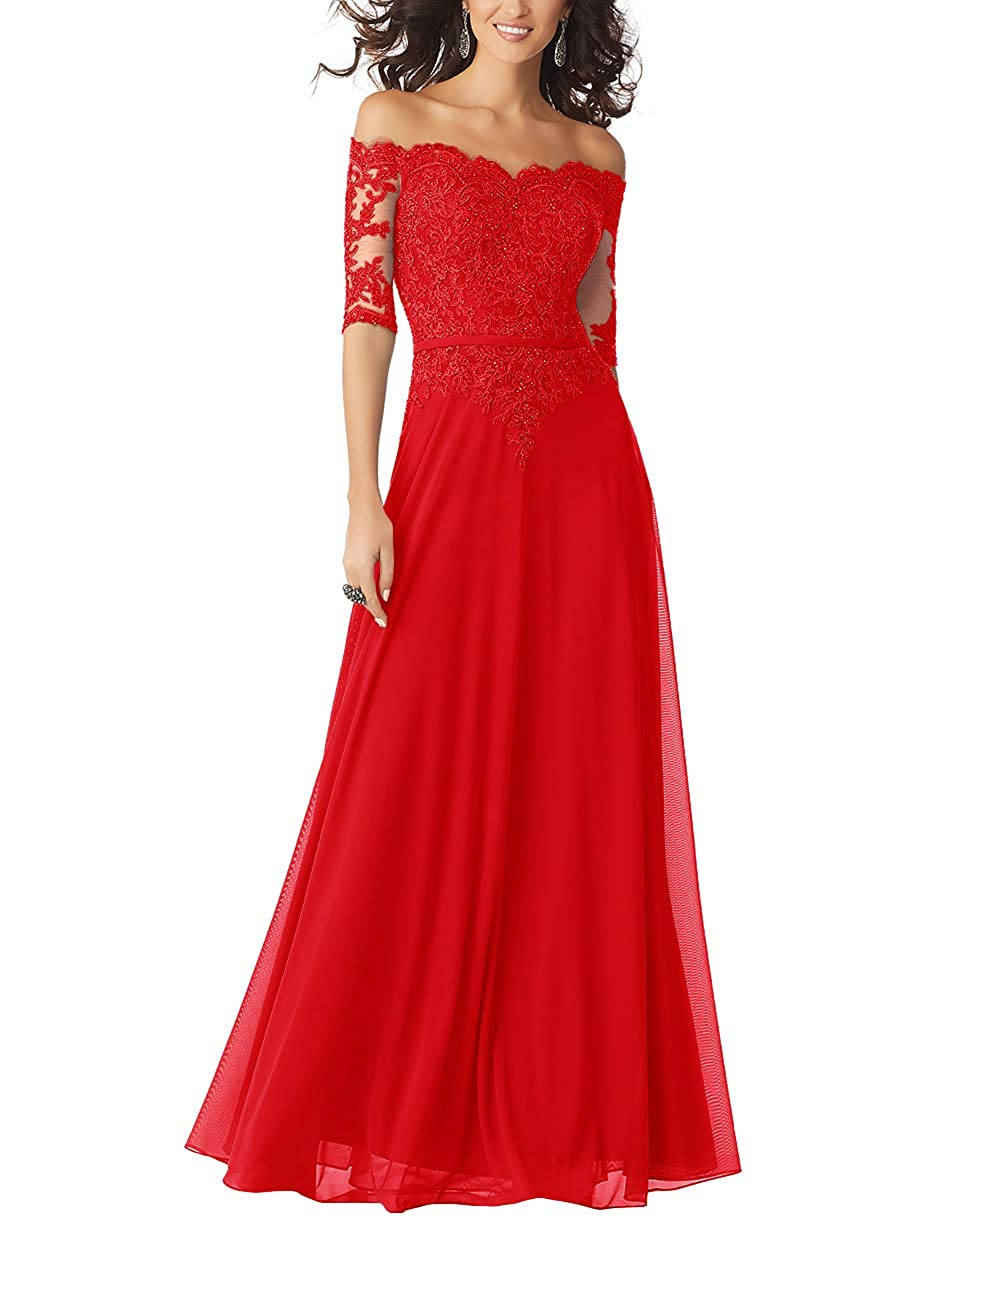 Red Women Lace Formal Evening Gown Half Sleeves Mother The Bride Dress